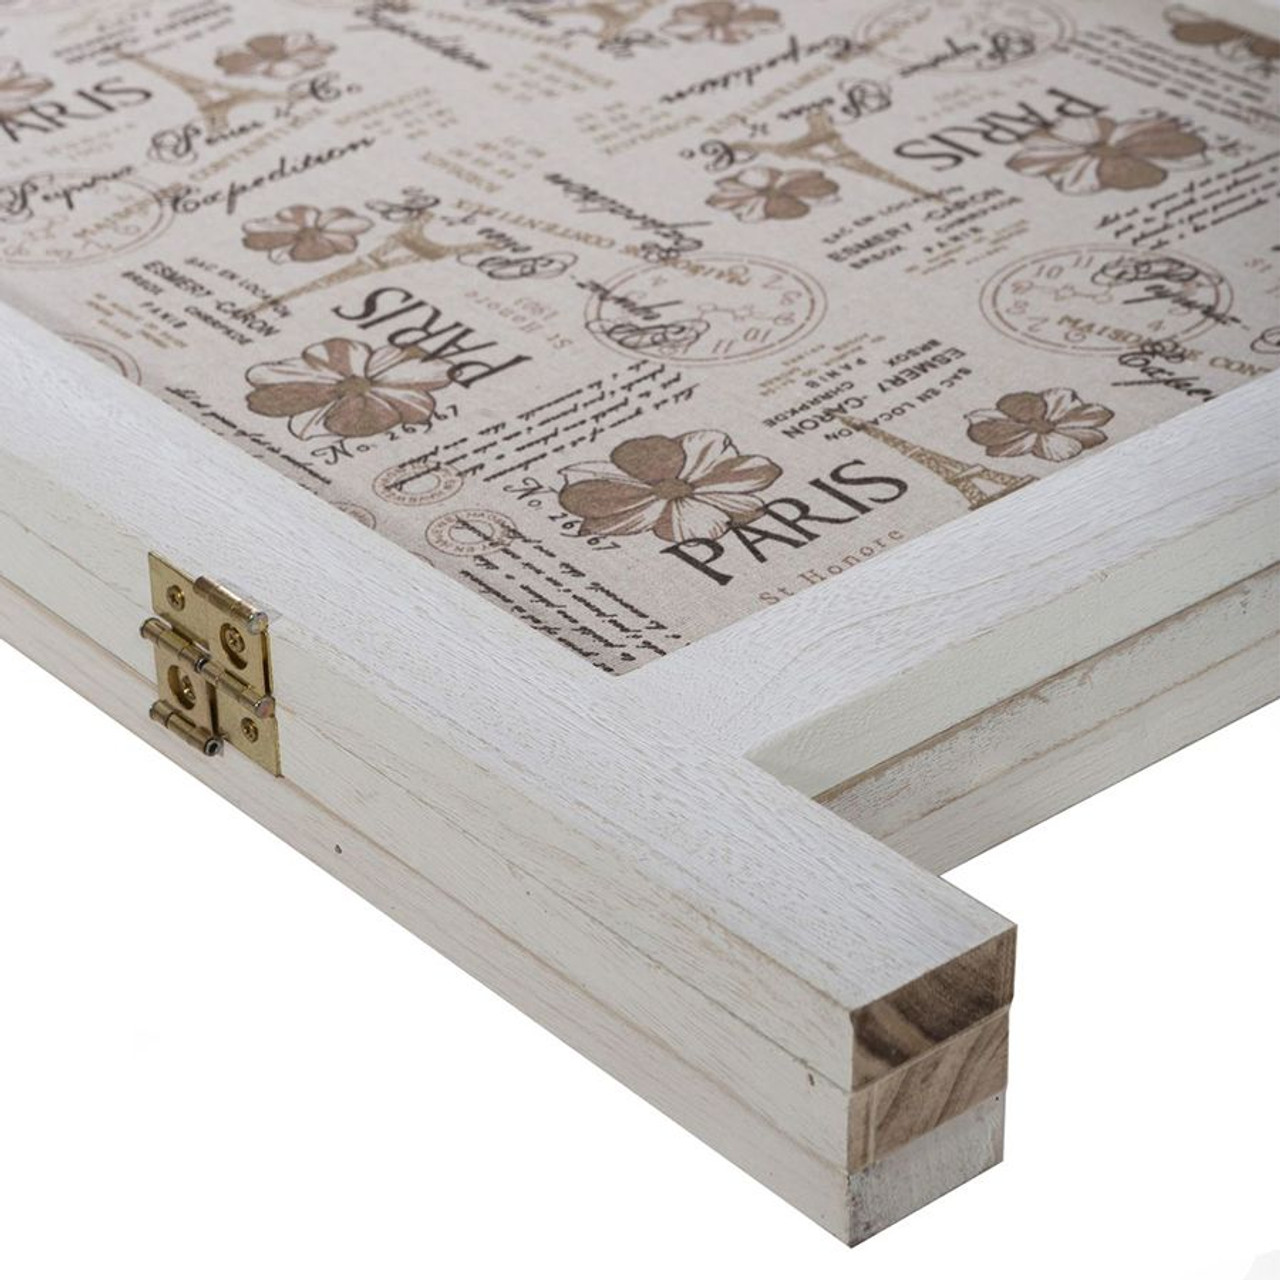 3 Panel Screen Room Divider, White Color Solid Wood With Paris Themed Canvas